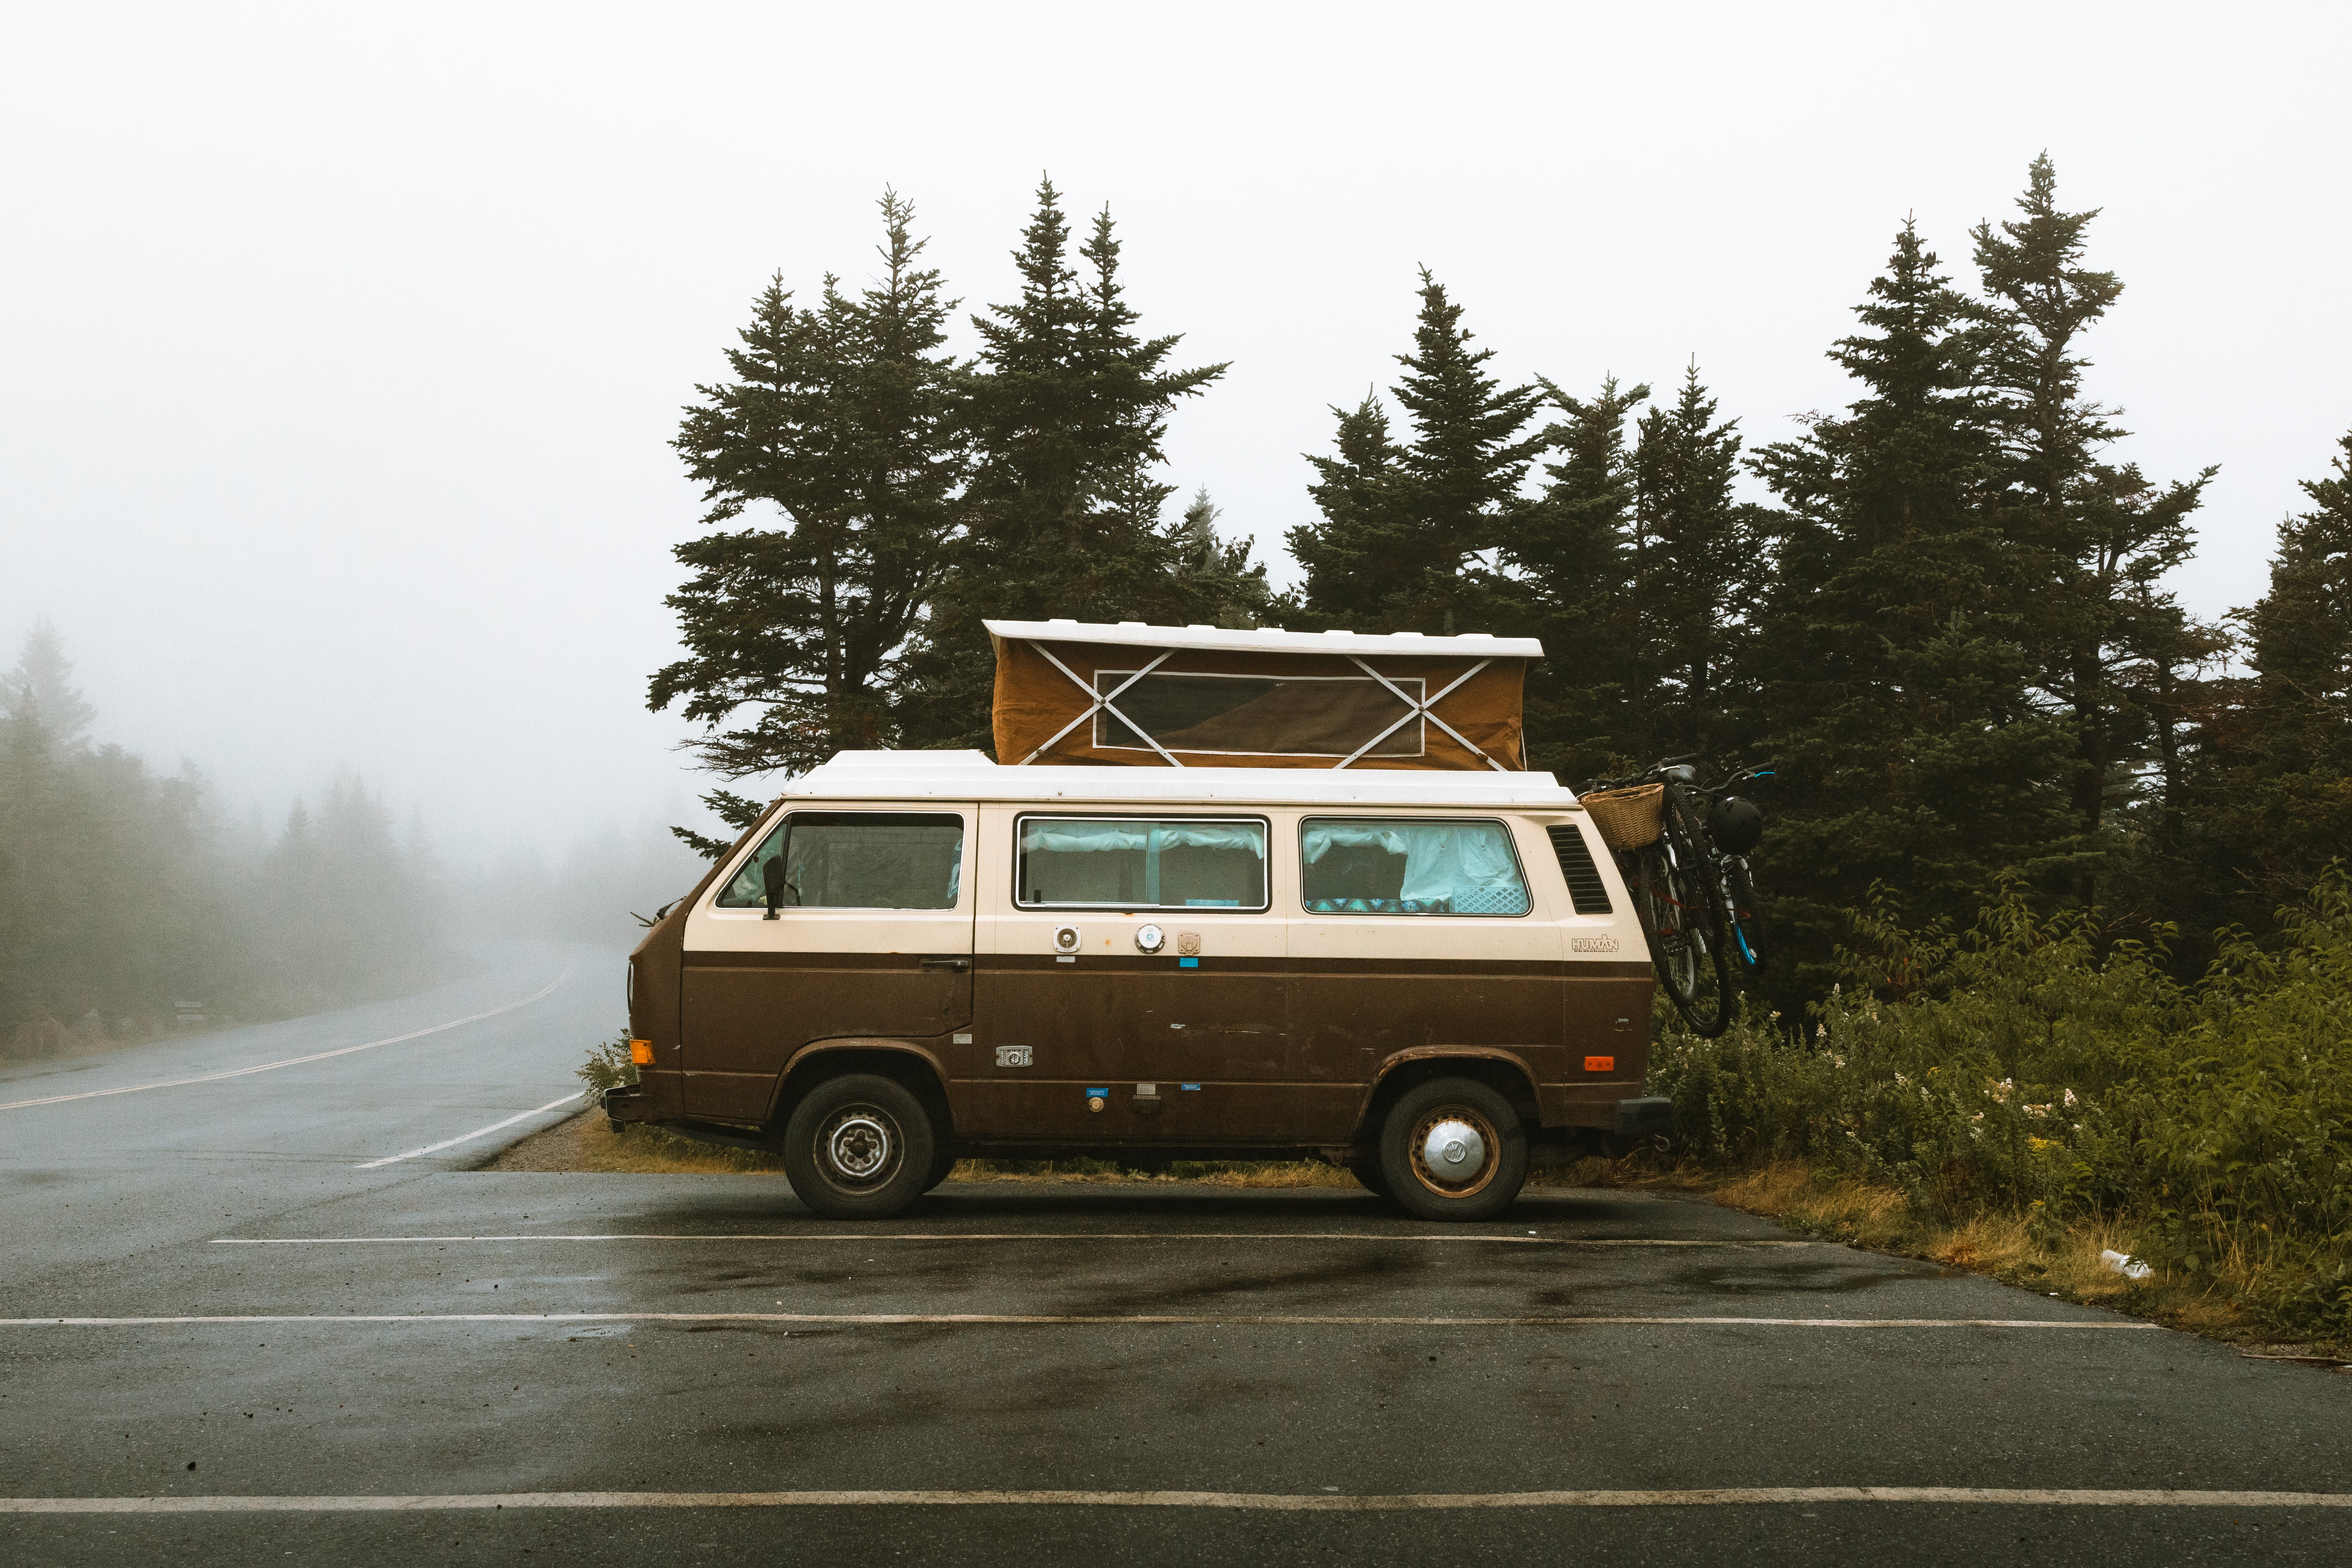 A Cadillac camper van parked in a parking lot near a forest of pine trees